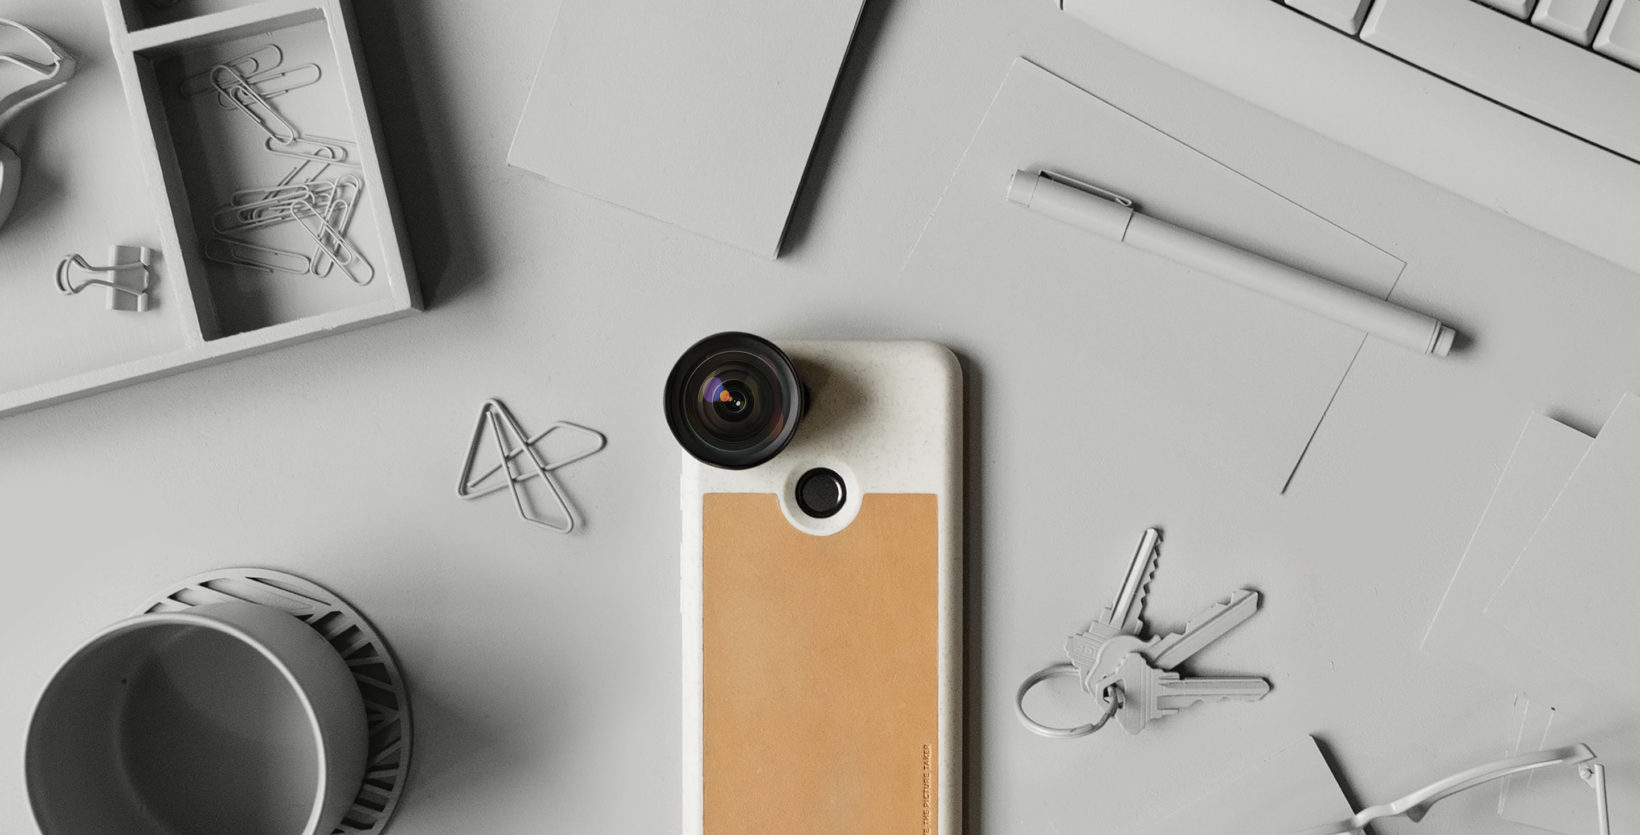 Google Pixel 3 and Pixel 3 XL: Cases, Lenses and Straps - Moment